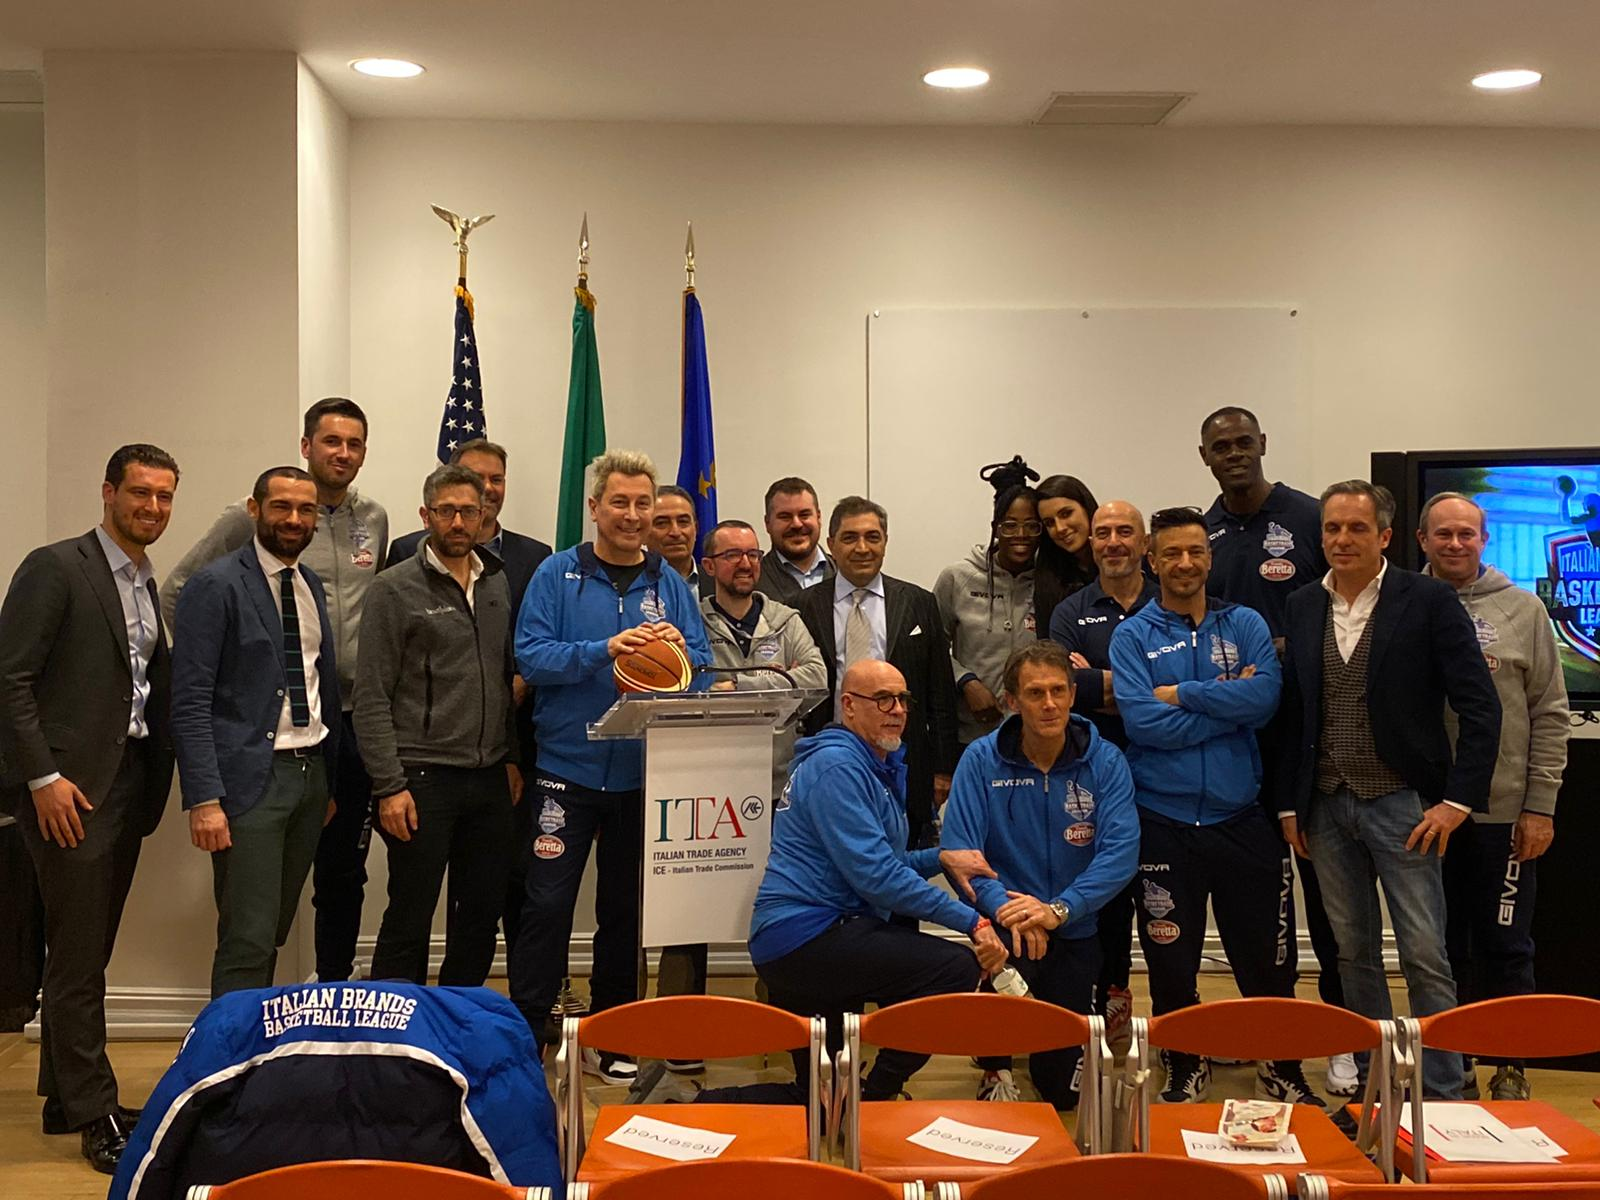 Made in Italy takes the field in New York with IBBL